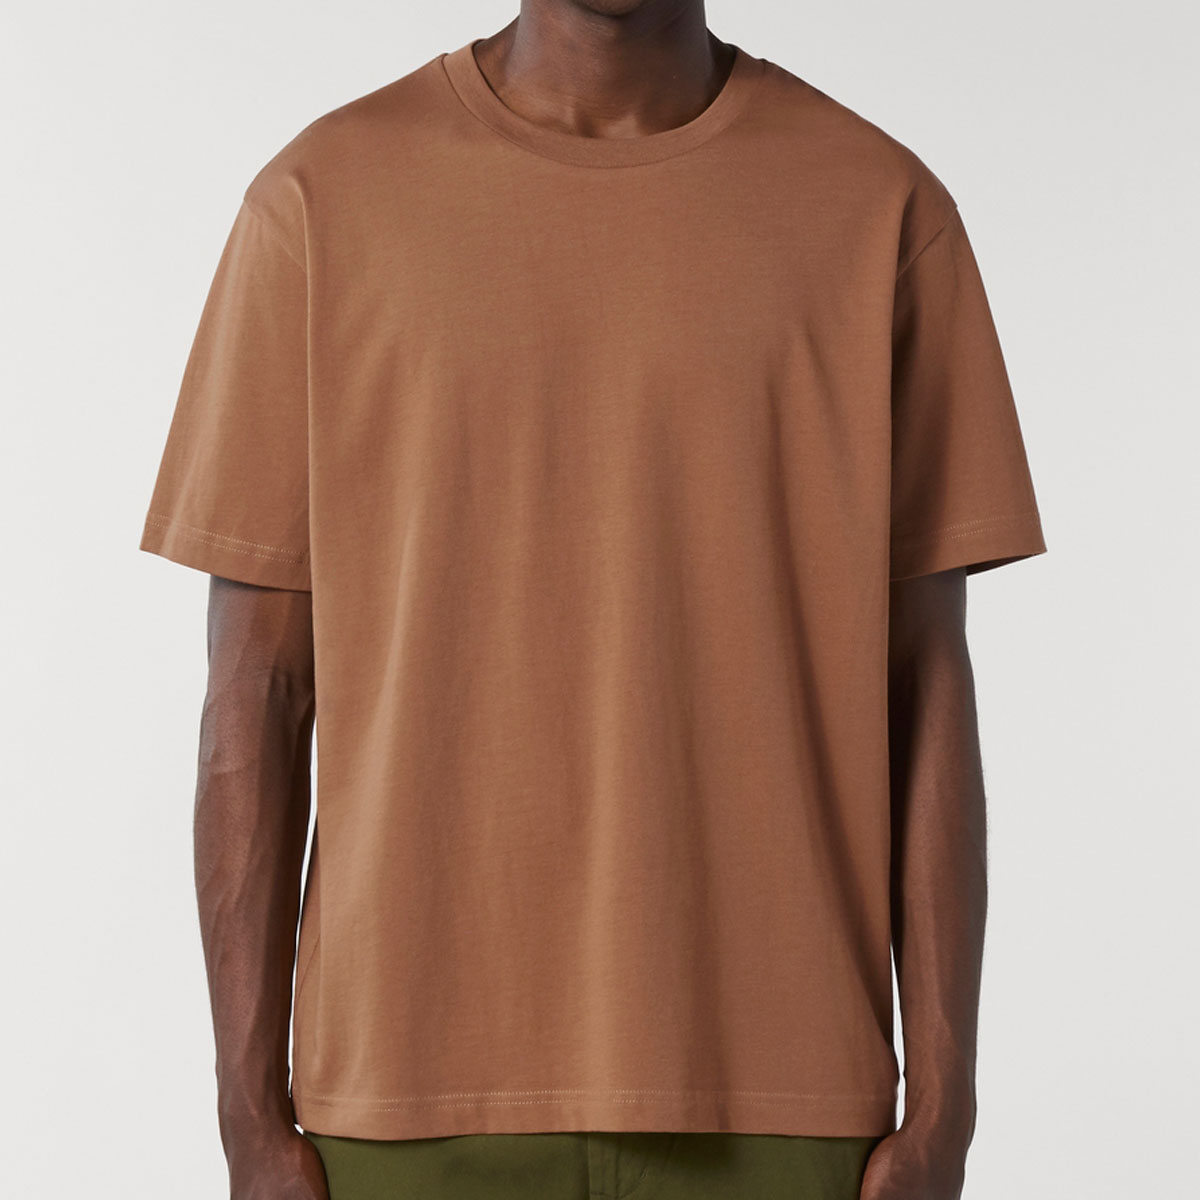 Stanley Stella Fuser Organic Unisex Relaxed T-Shirts